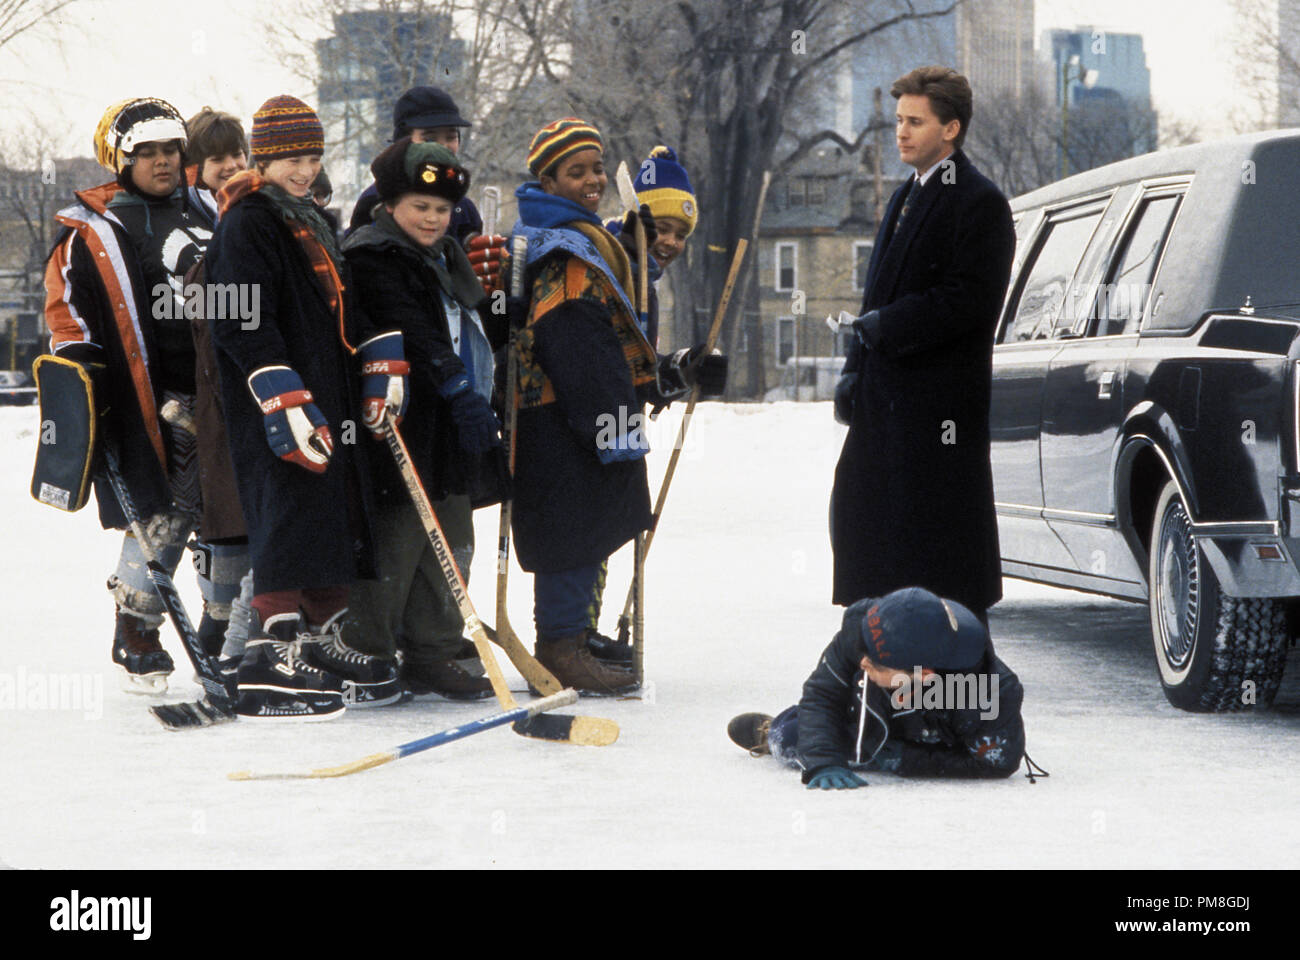 Film still or Publicity still from 'The Mighty Ducks' Emilio Estevez © 1992 Walt Disney Pictures Photo Credit: Deborah Croswell  All Rights Reserved   File Reference # 31487_296THA  For Editorial Use Only - Stock Image